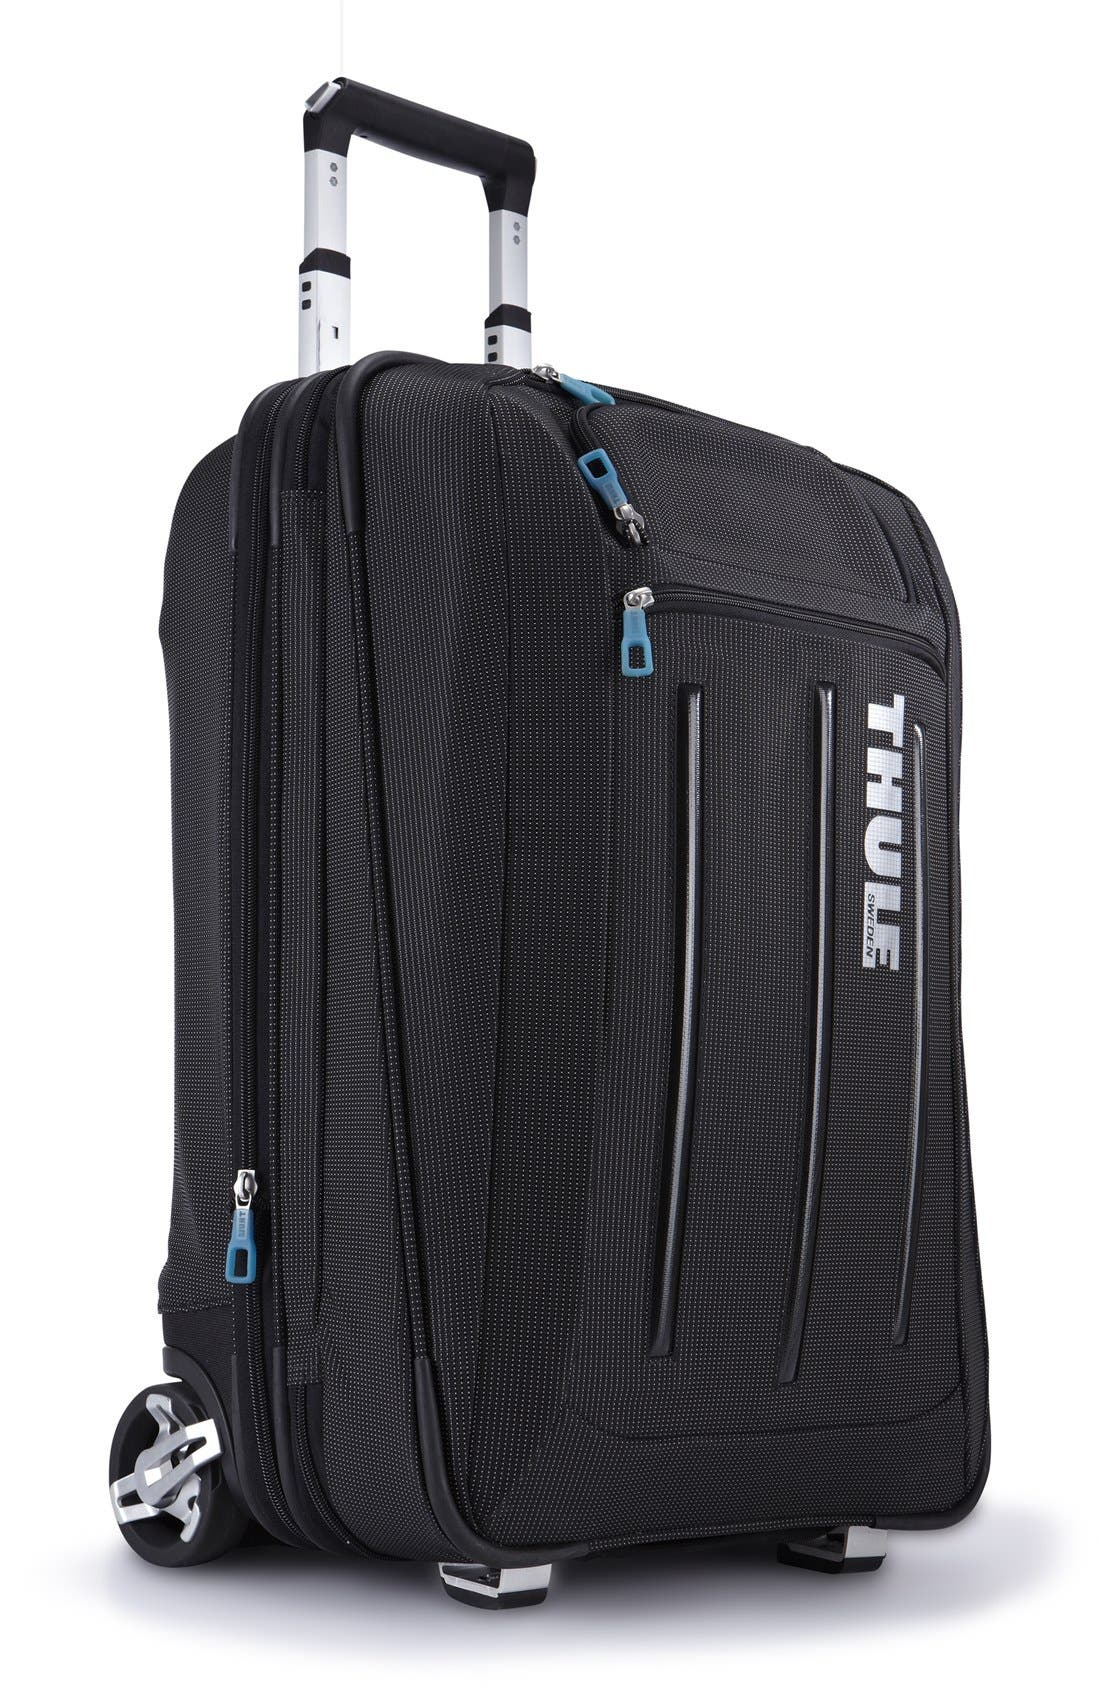 Main Image - Thule 'Crossover' Rolling Carry-On with Garment Bag (22 inch)